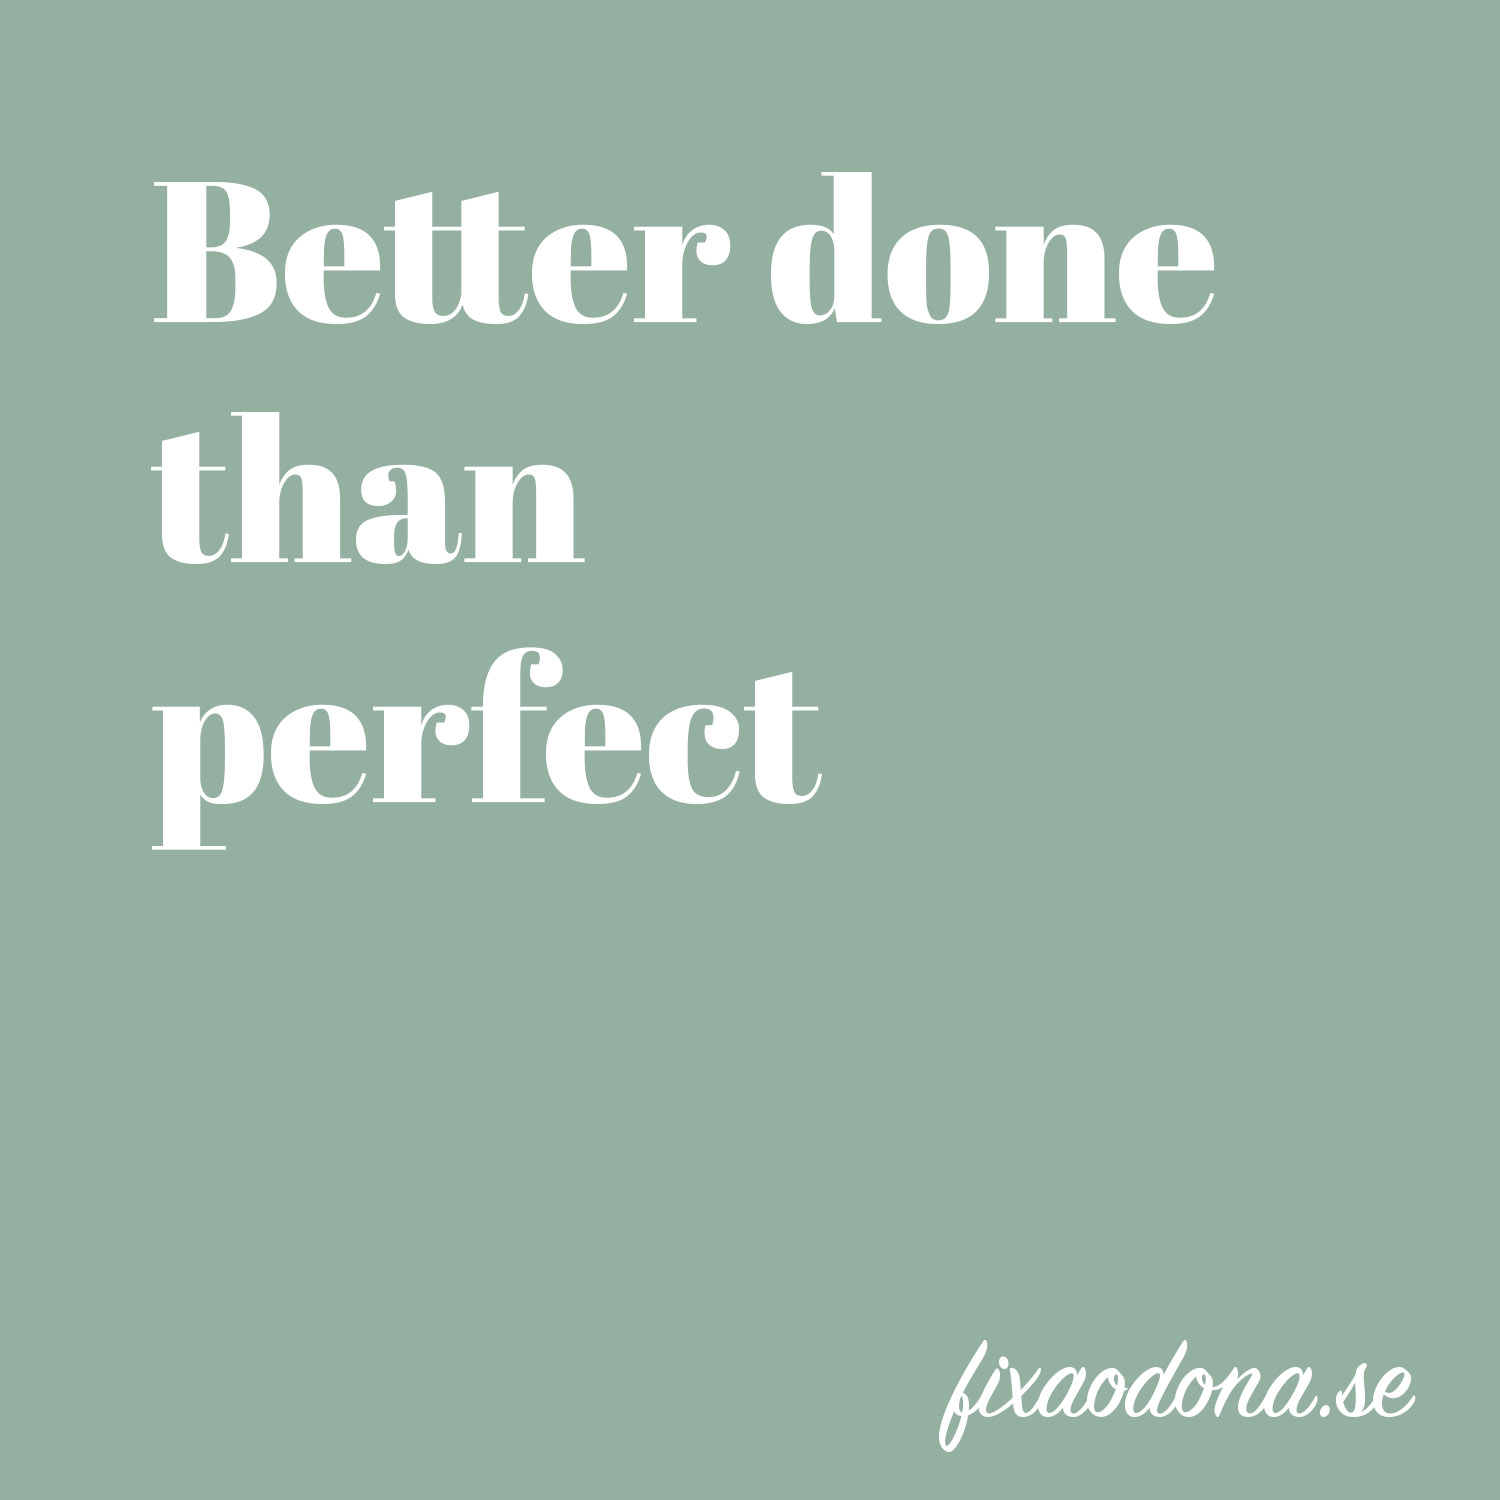 Better done than perfect - fixaodona.se